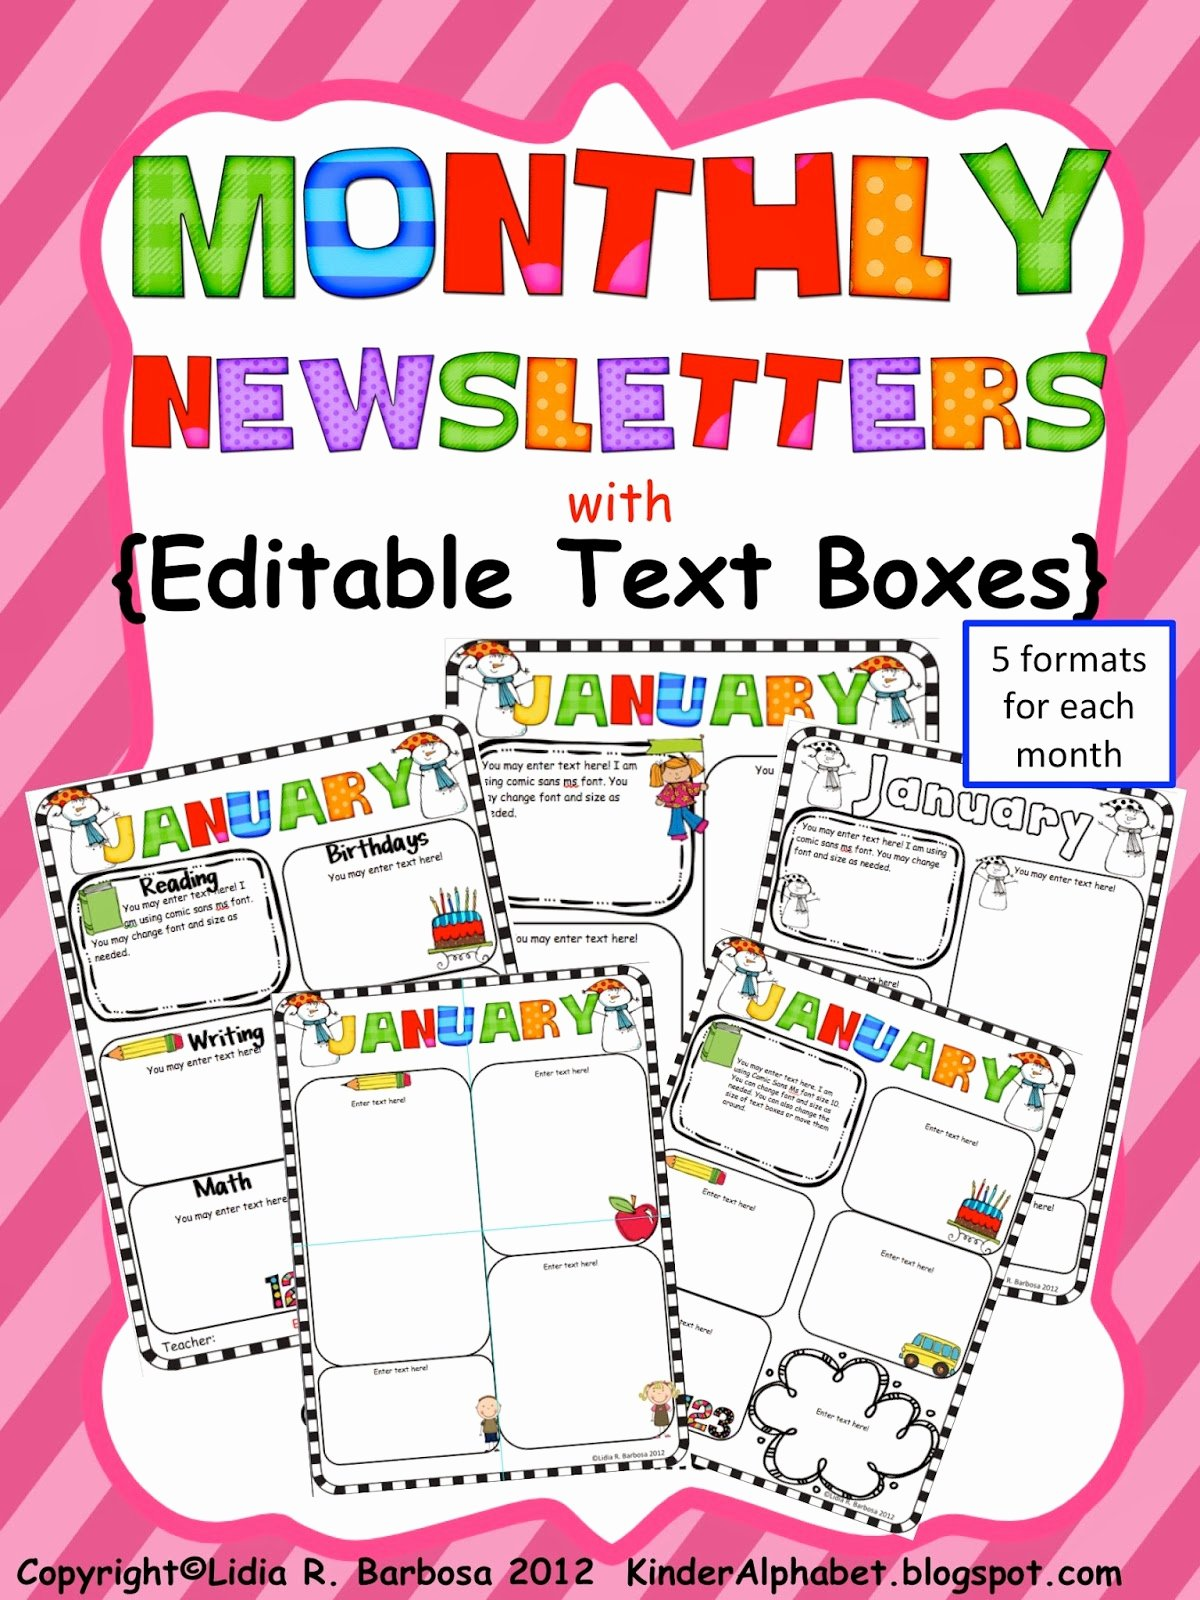 Monthly Newsletter Template for Teachers Fresh Kinder Alphabet — Teacher Resources In English and Spanish